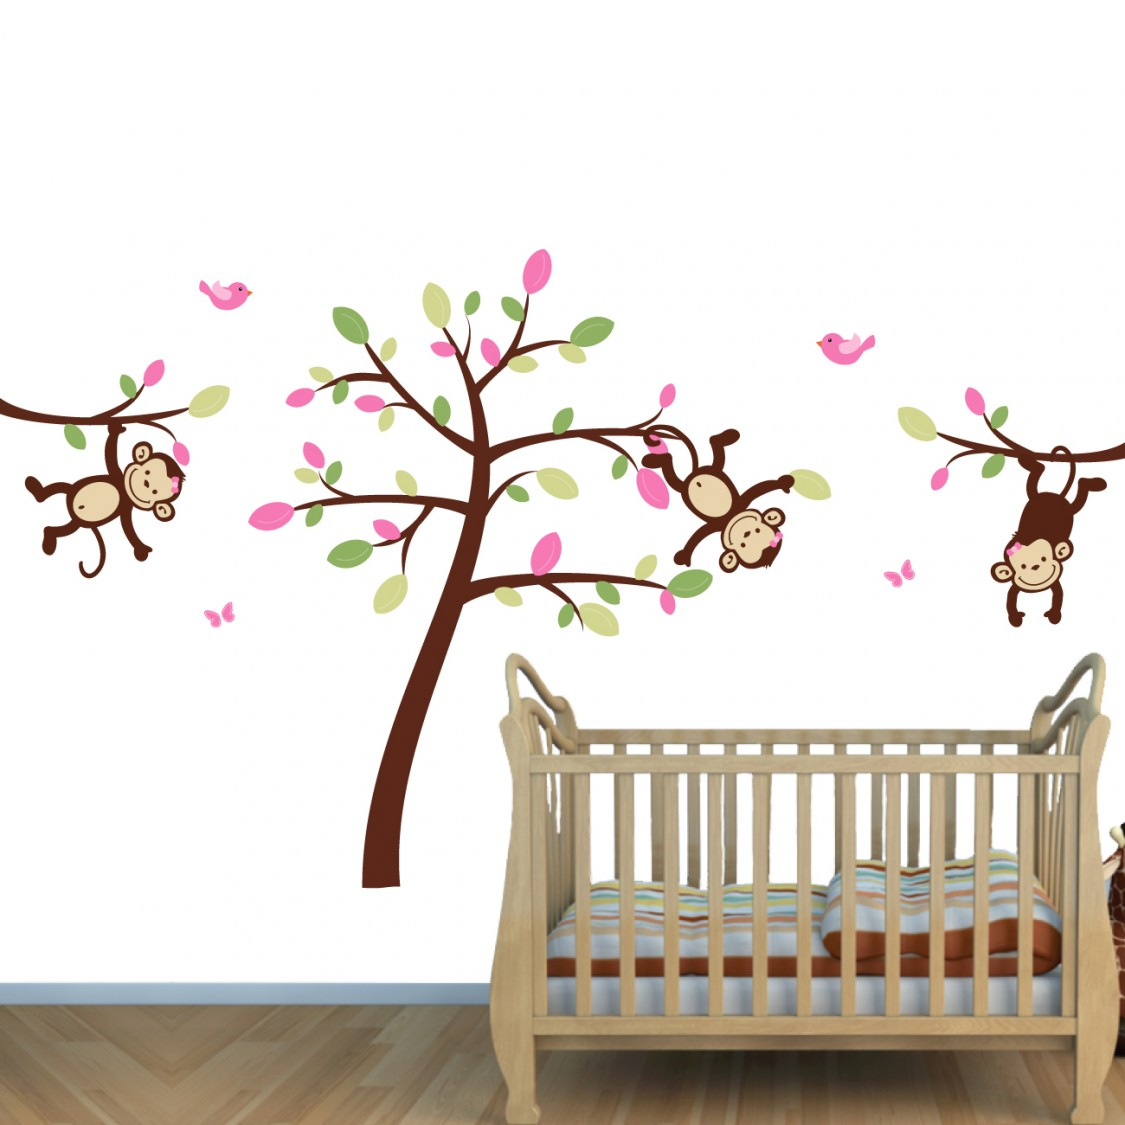 Pink & Green Jungle Wall Stickers With Little Monkey Murals For Rooms